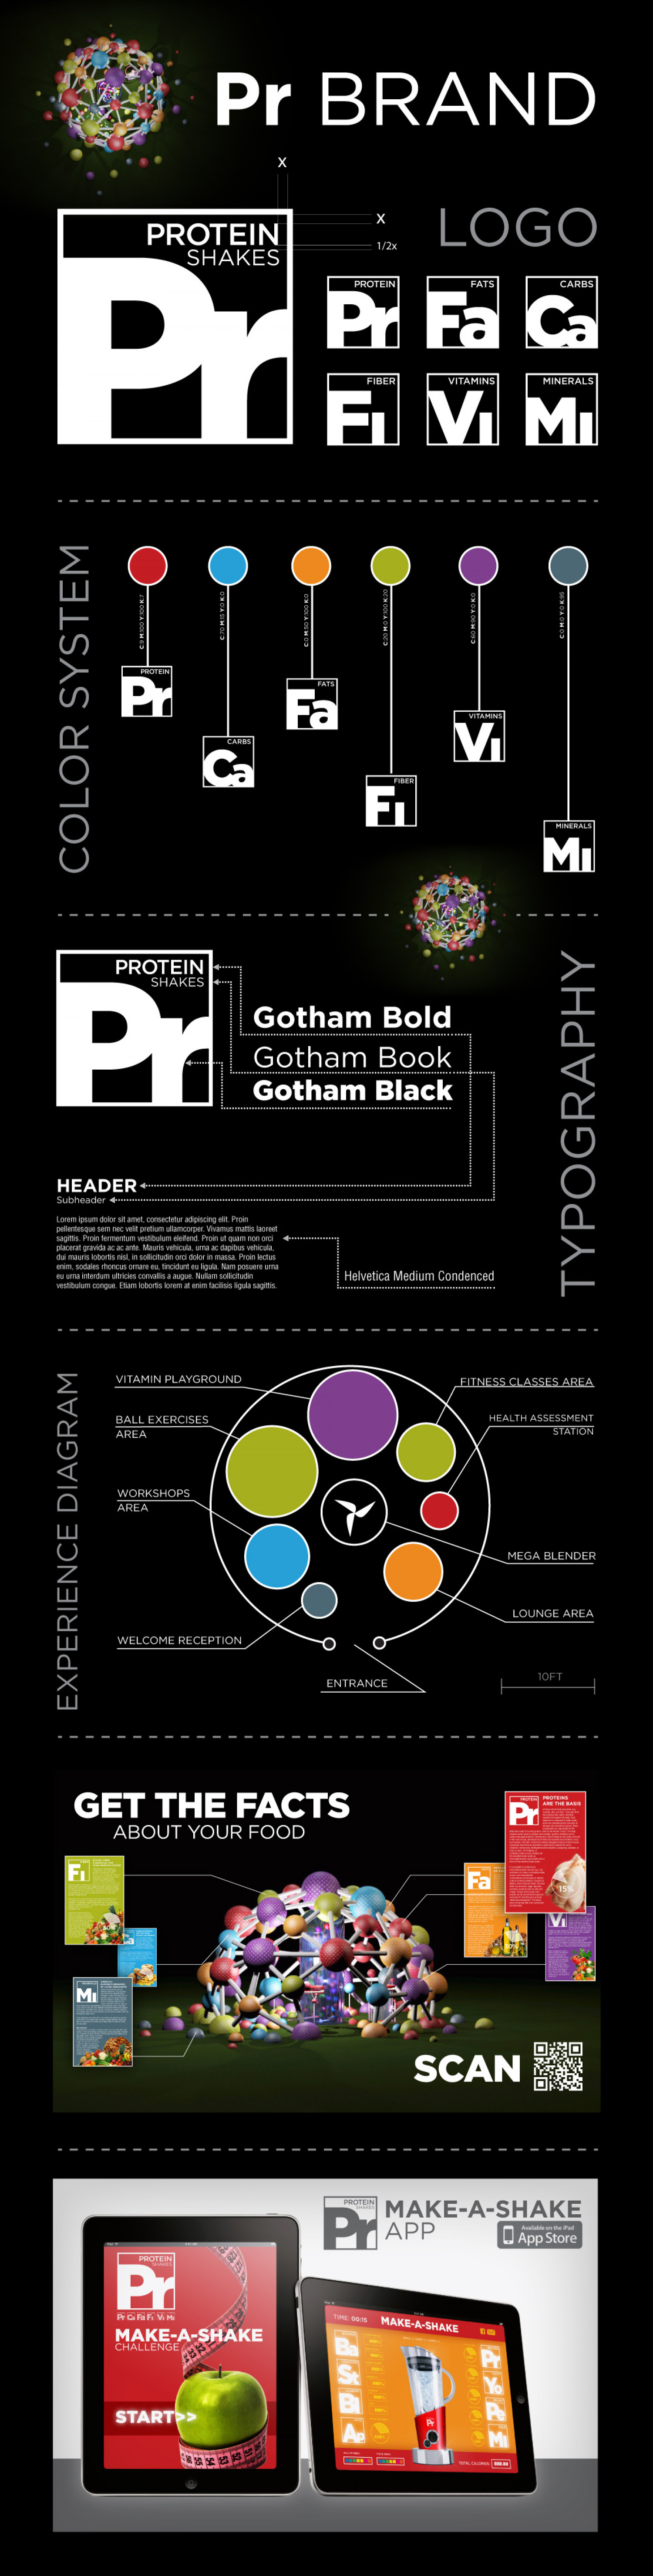 Brand Visual Guidelines Infographic Infographic